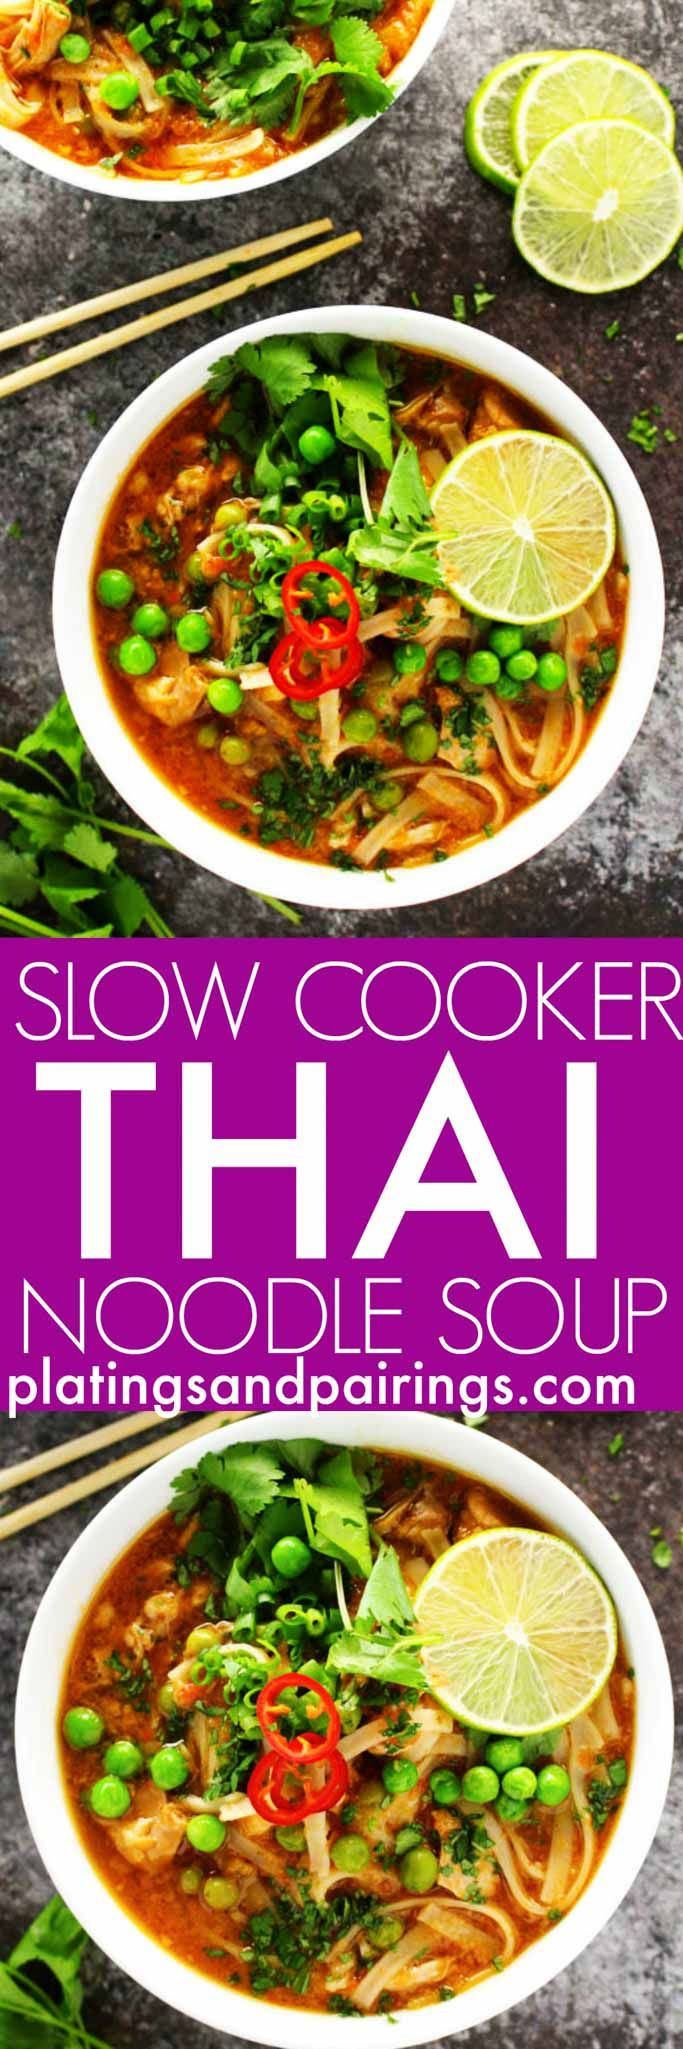 This Easy Slow Cooker Thai Chicken Noodle Soup makes it easy to enjoy your favorite spicy, aromatic, authentic Thai soup at home! | platingsandpairings.com (Vegan Curry Slow Cooker)